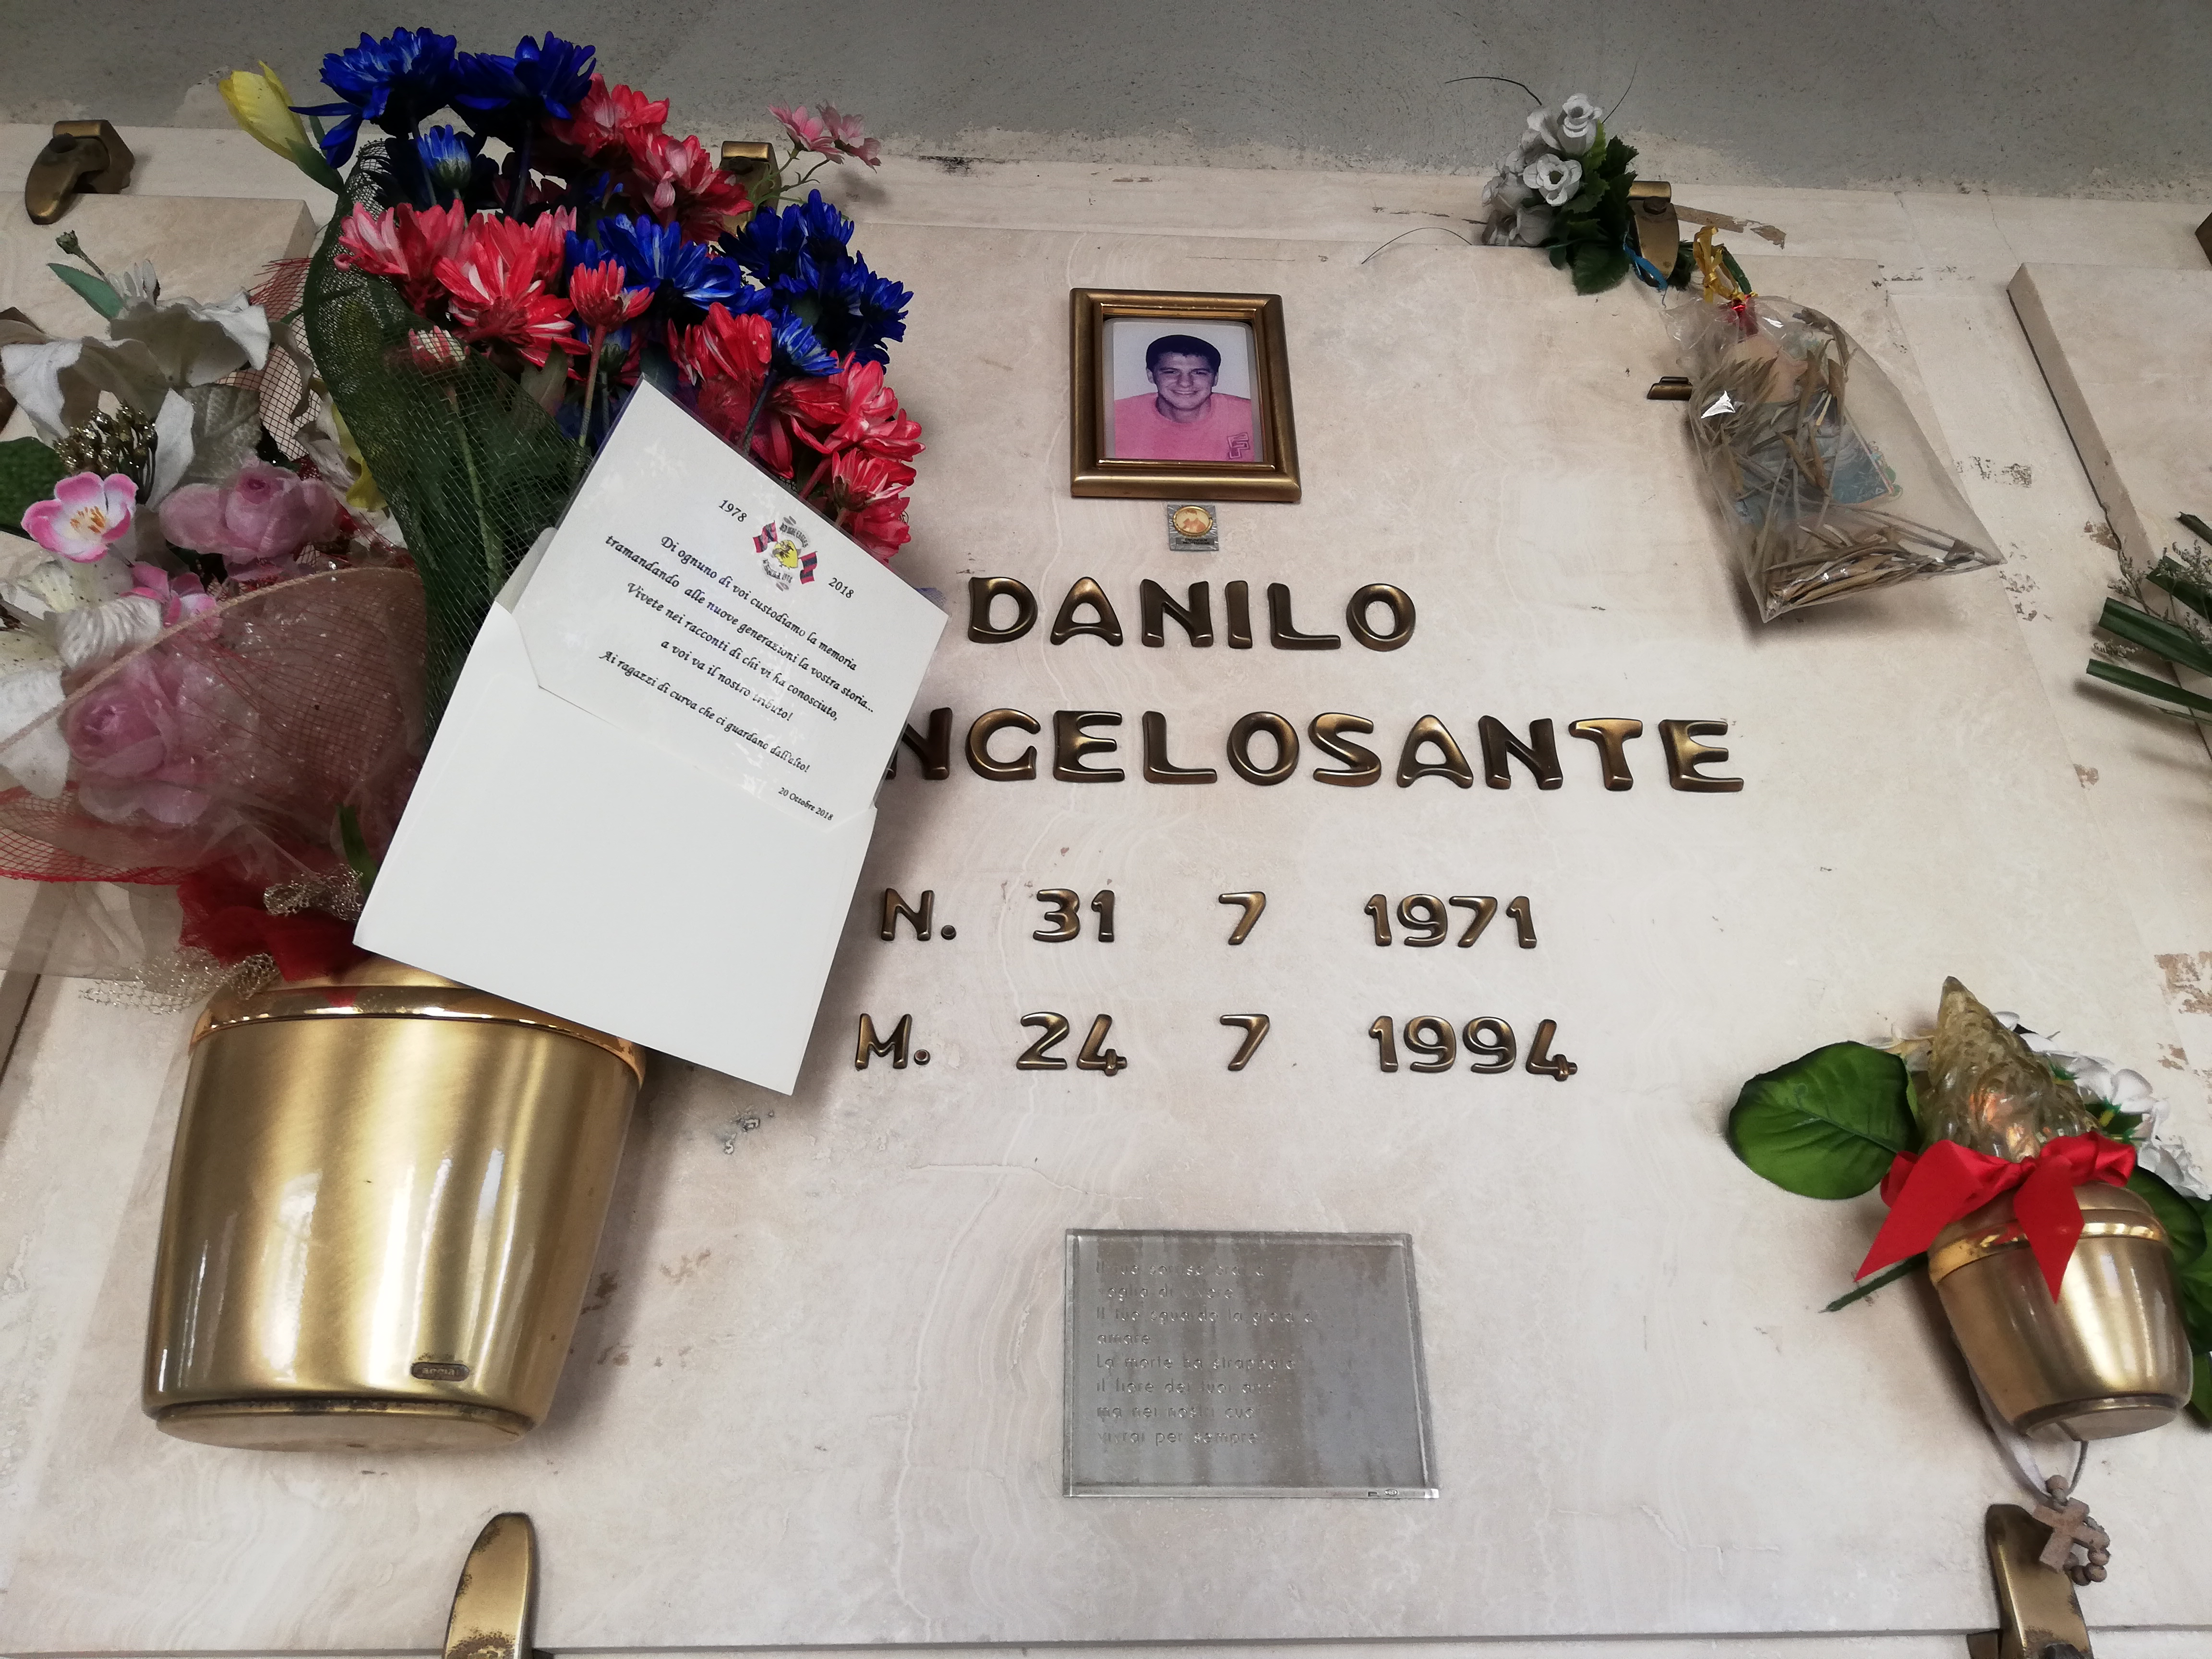 In memoria di Danilo D'Angelosante Sabato 20 Ottobre 2018 in occasione dei 40 anni Red Blue Eagles L'Aquila 1978